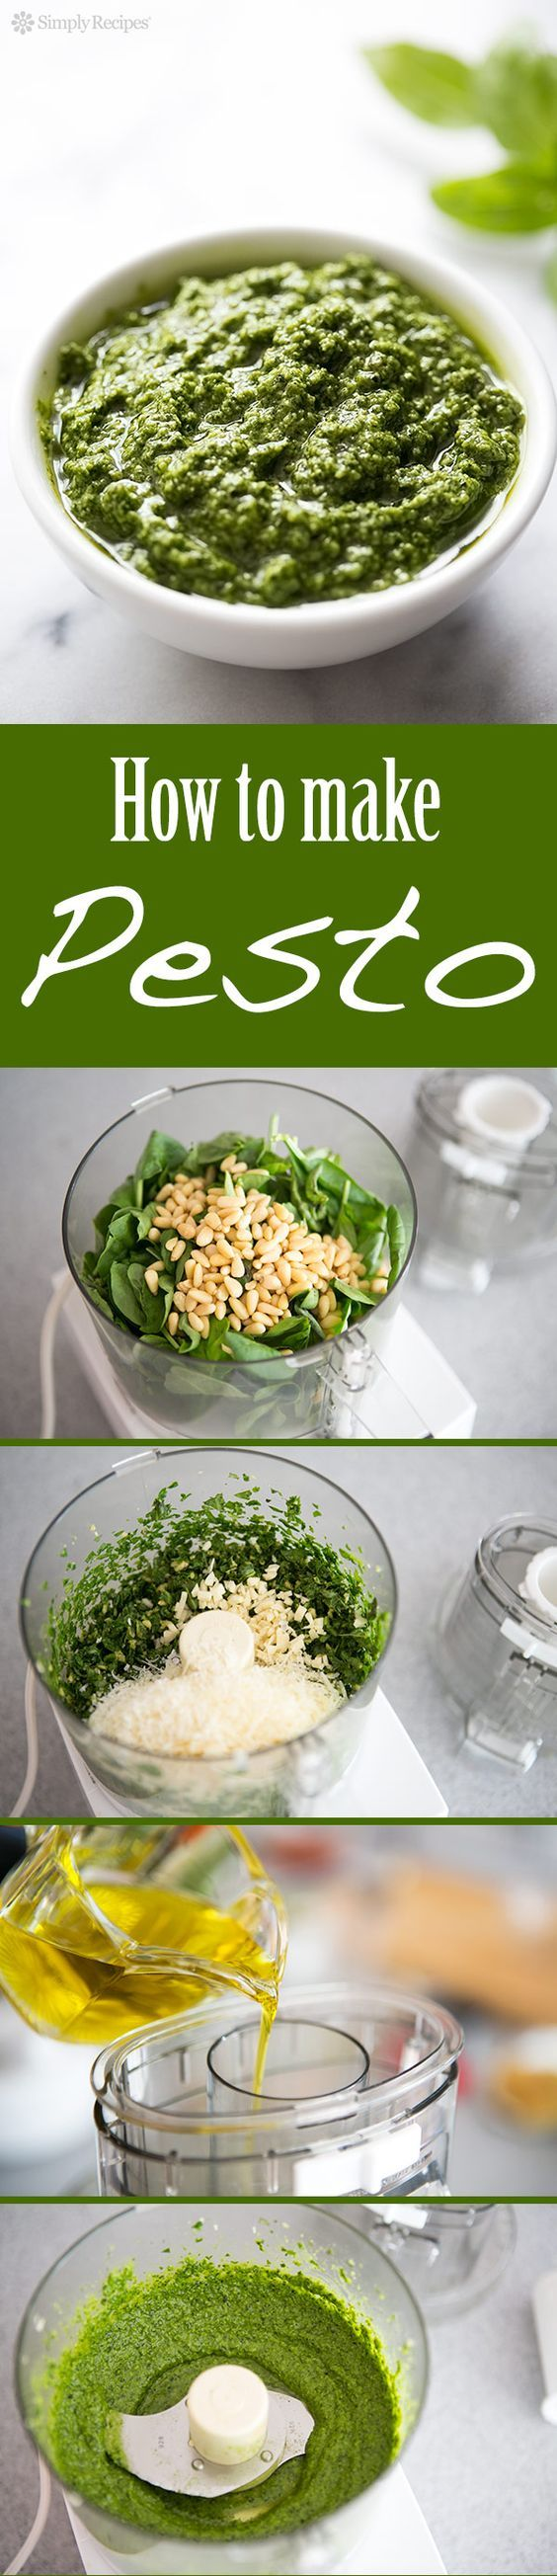 Fresh Basil Pesto - Make your own homemade pesto. It's EASY! Great for adding to pasta, chicken, even toast.